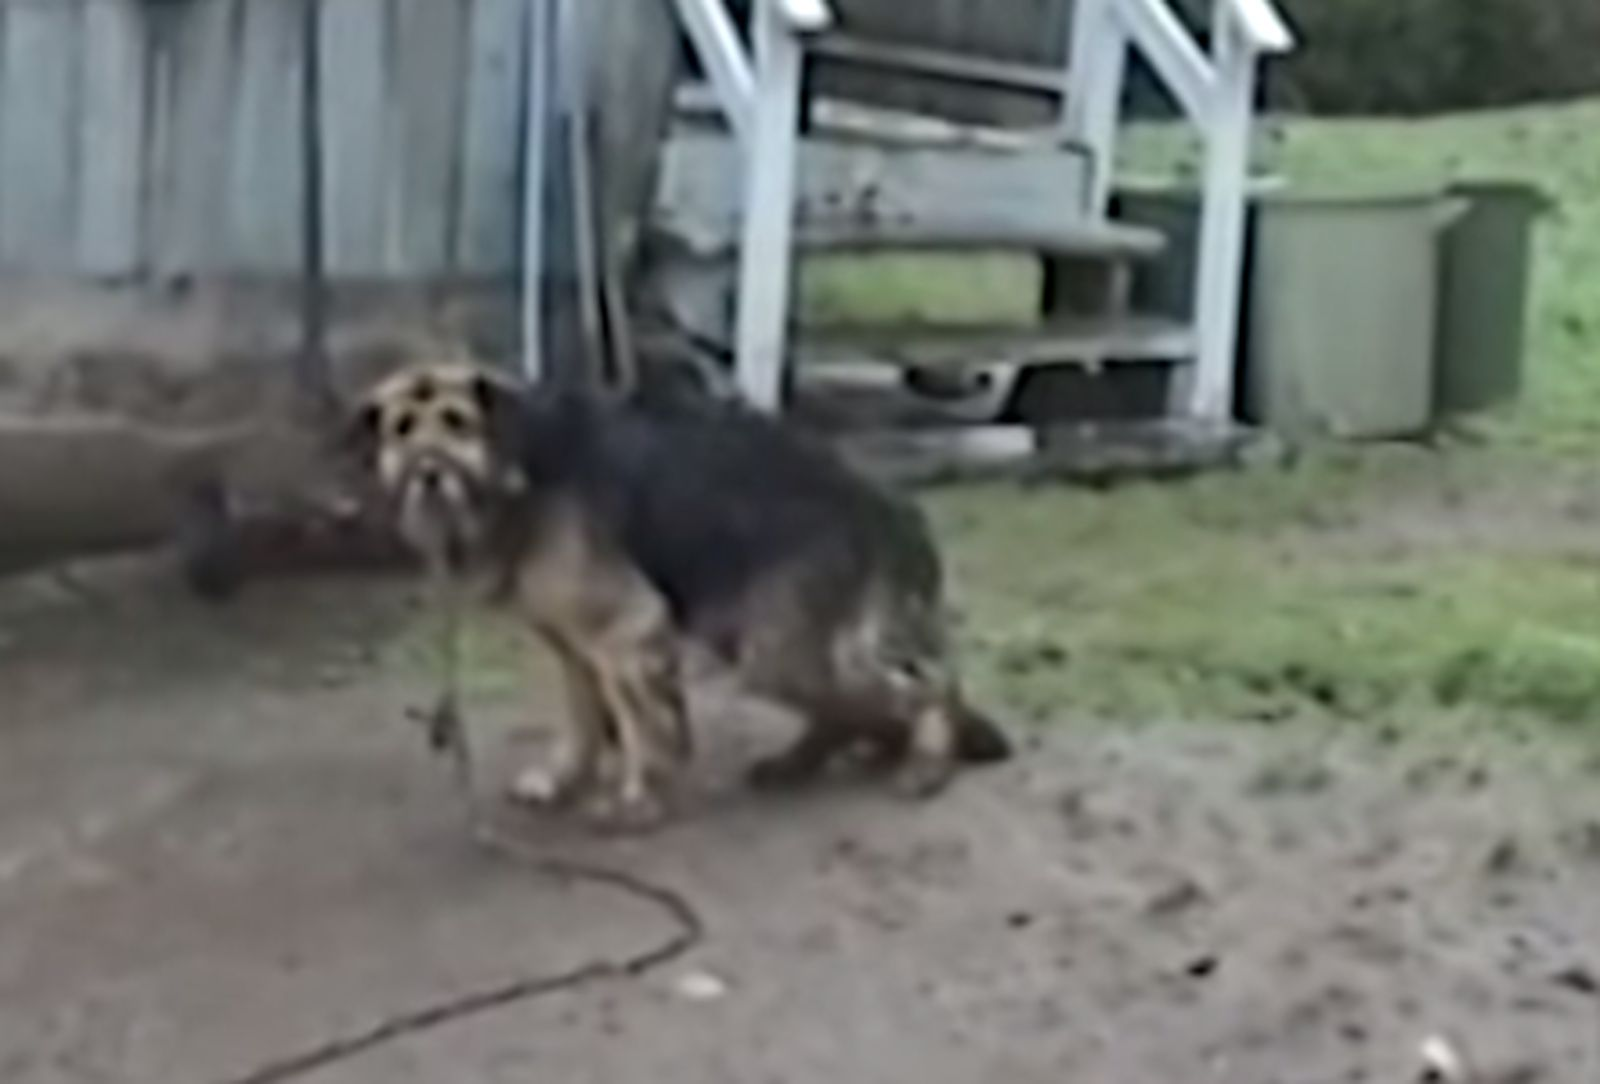 Dog Chained for 10 Years Finally Gets Rescued (VIDEO) // this hurts my heart more than I will ever be able to say. I will never understand why people have pets and then keep them outside. They urinated on her! Tears for Judith. Some happy. Mostly sad for the 10 years of cold, hungry hurt she endured. If you see this ever - do something. Step up. Save the animal from this.